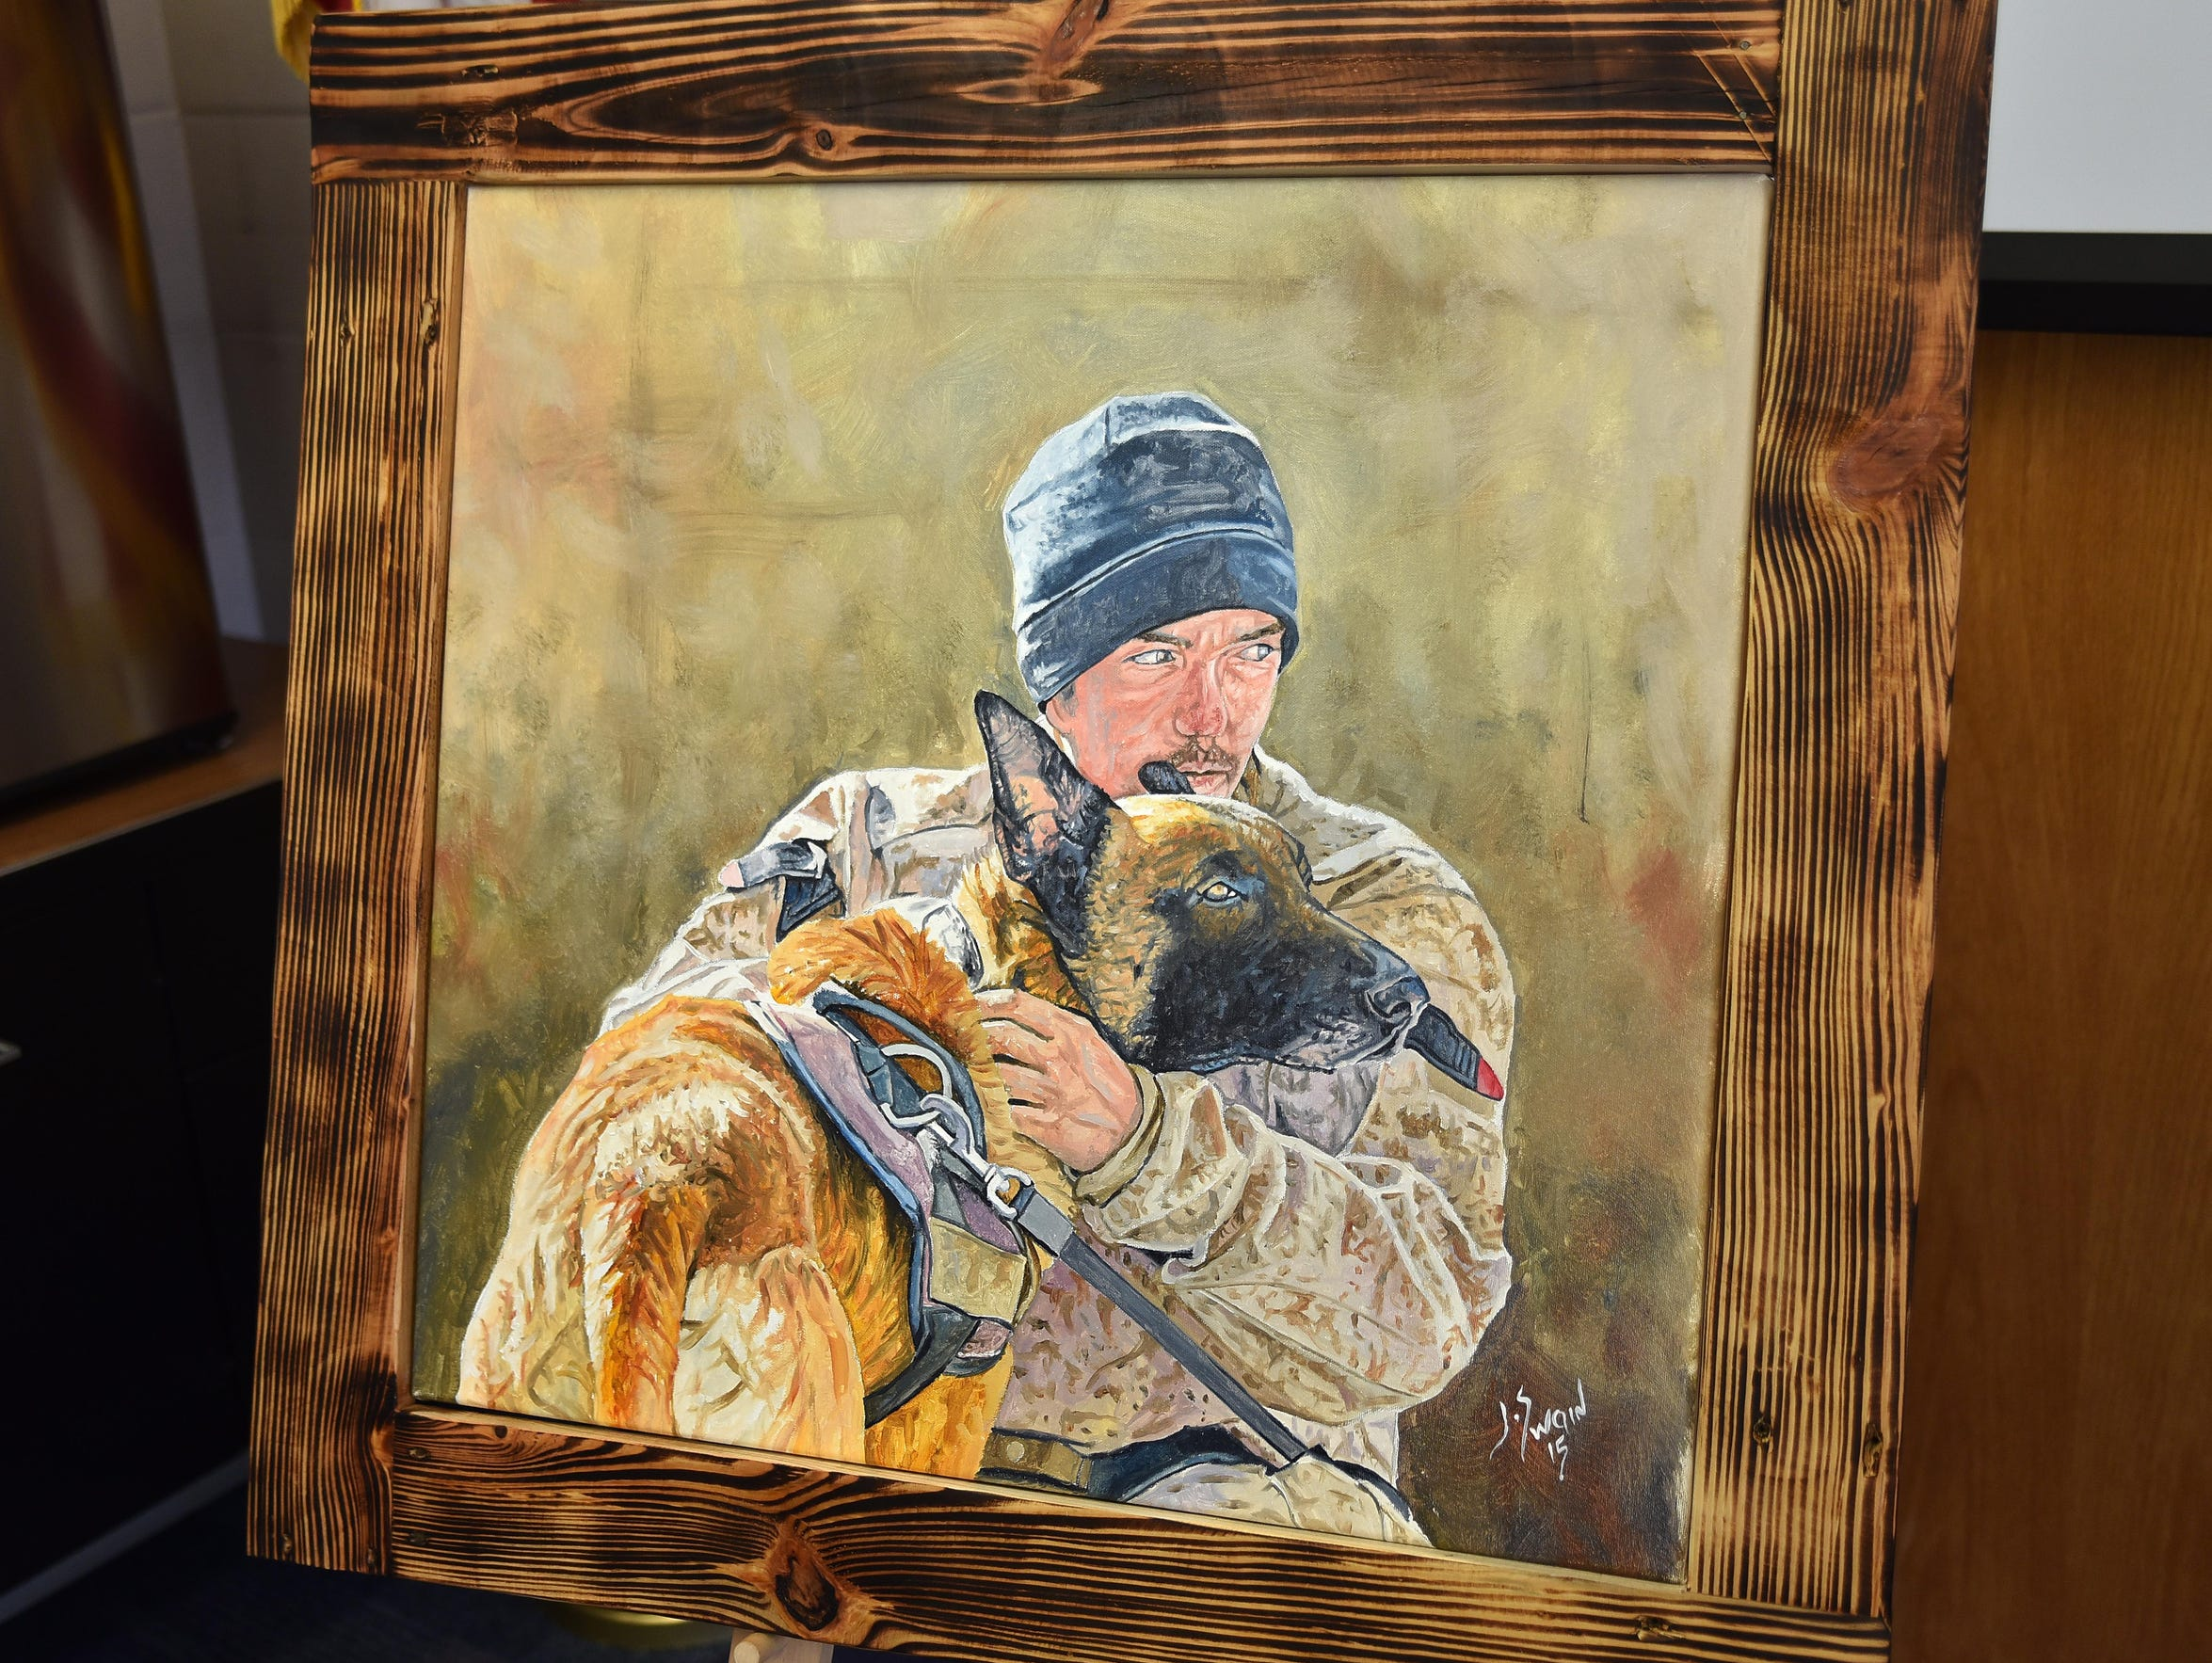 The portrait of Marine Cpl. Derrick Magee and his K9